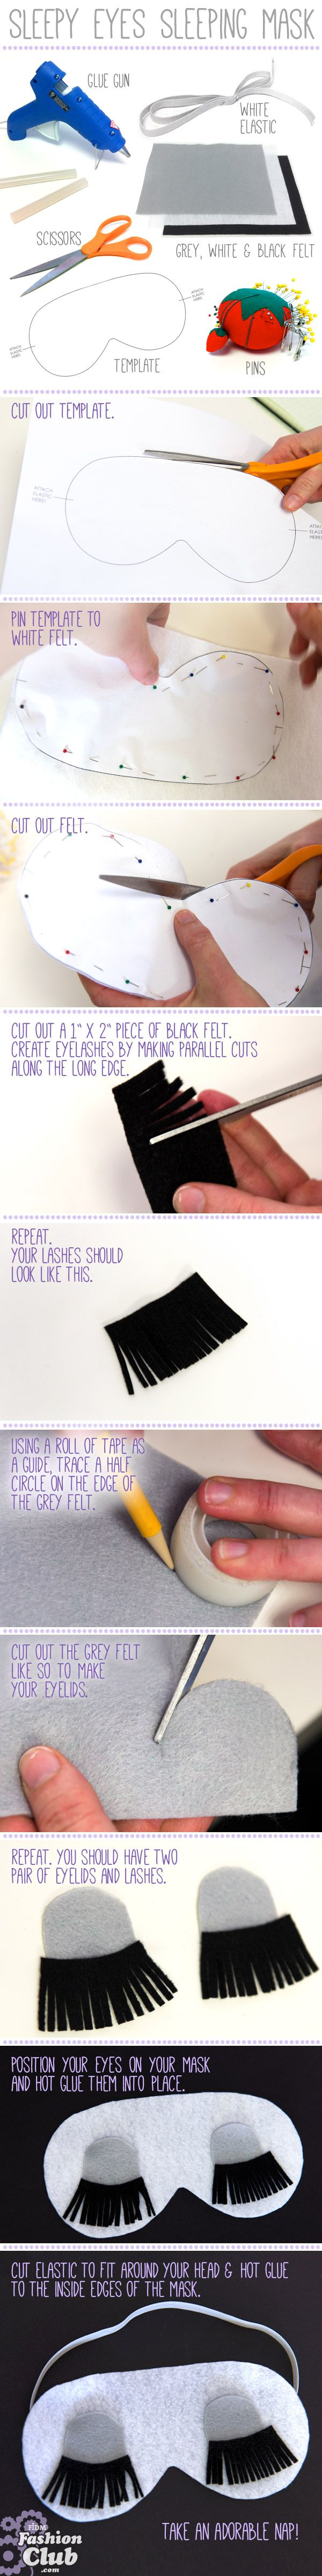 """DIY: Our Sleepy Eyes Sleeping Mask DIY is inspired by """"Breakfast at Tiffany's."""" Click on the image above for more DIYs and projects! #FIDM #FashionClub"""